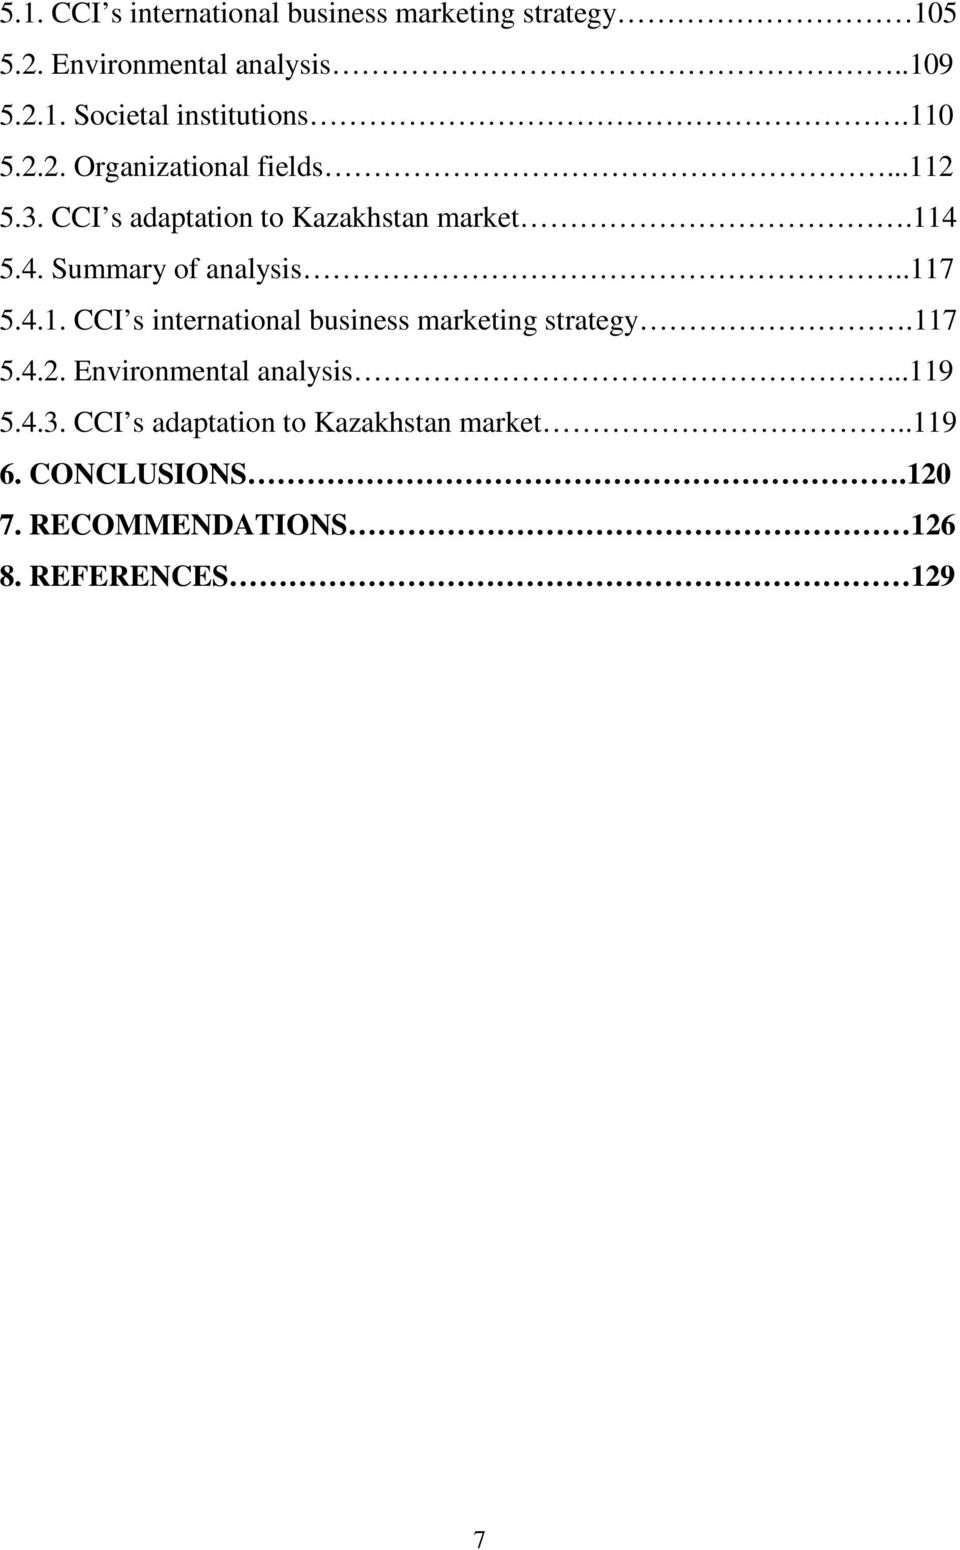 Market Analysis and Strategic Recommendation